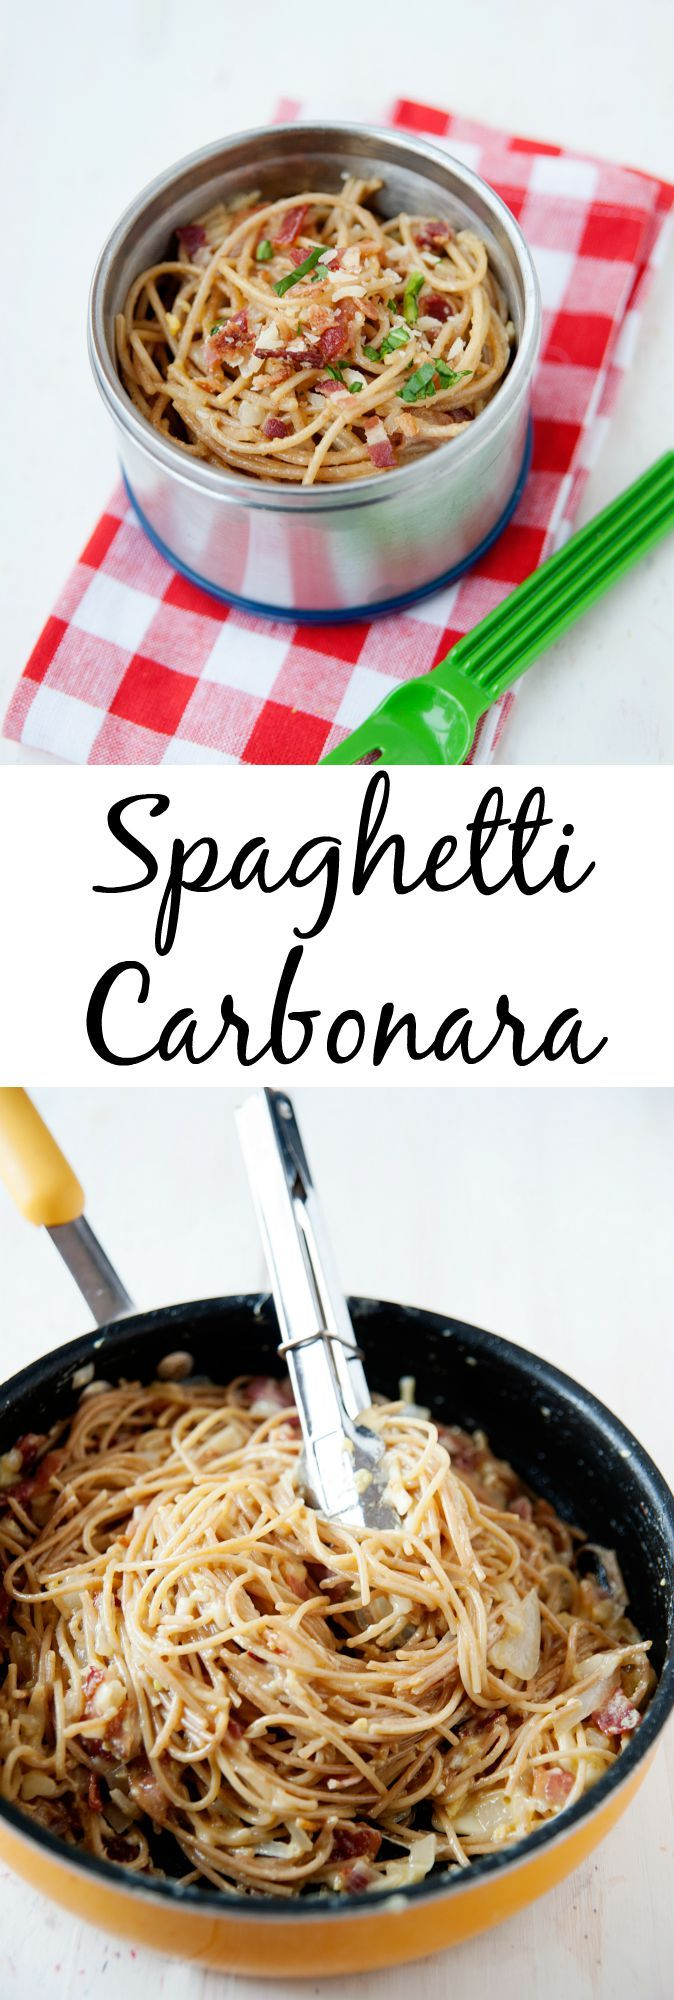 This easy spaghetti carbonara recipe is one that comes together quickly in the skillet with minimal effort. It's one meal everyone will love!